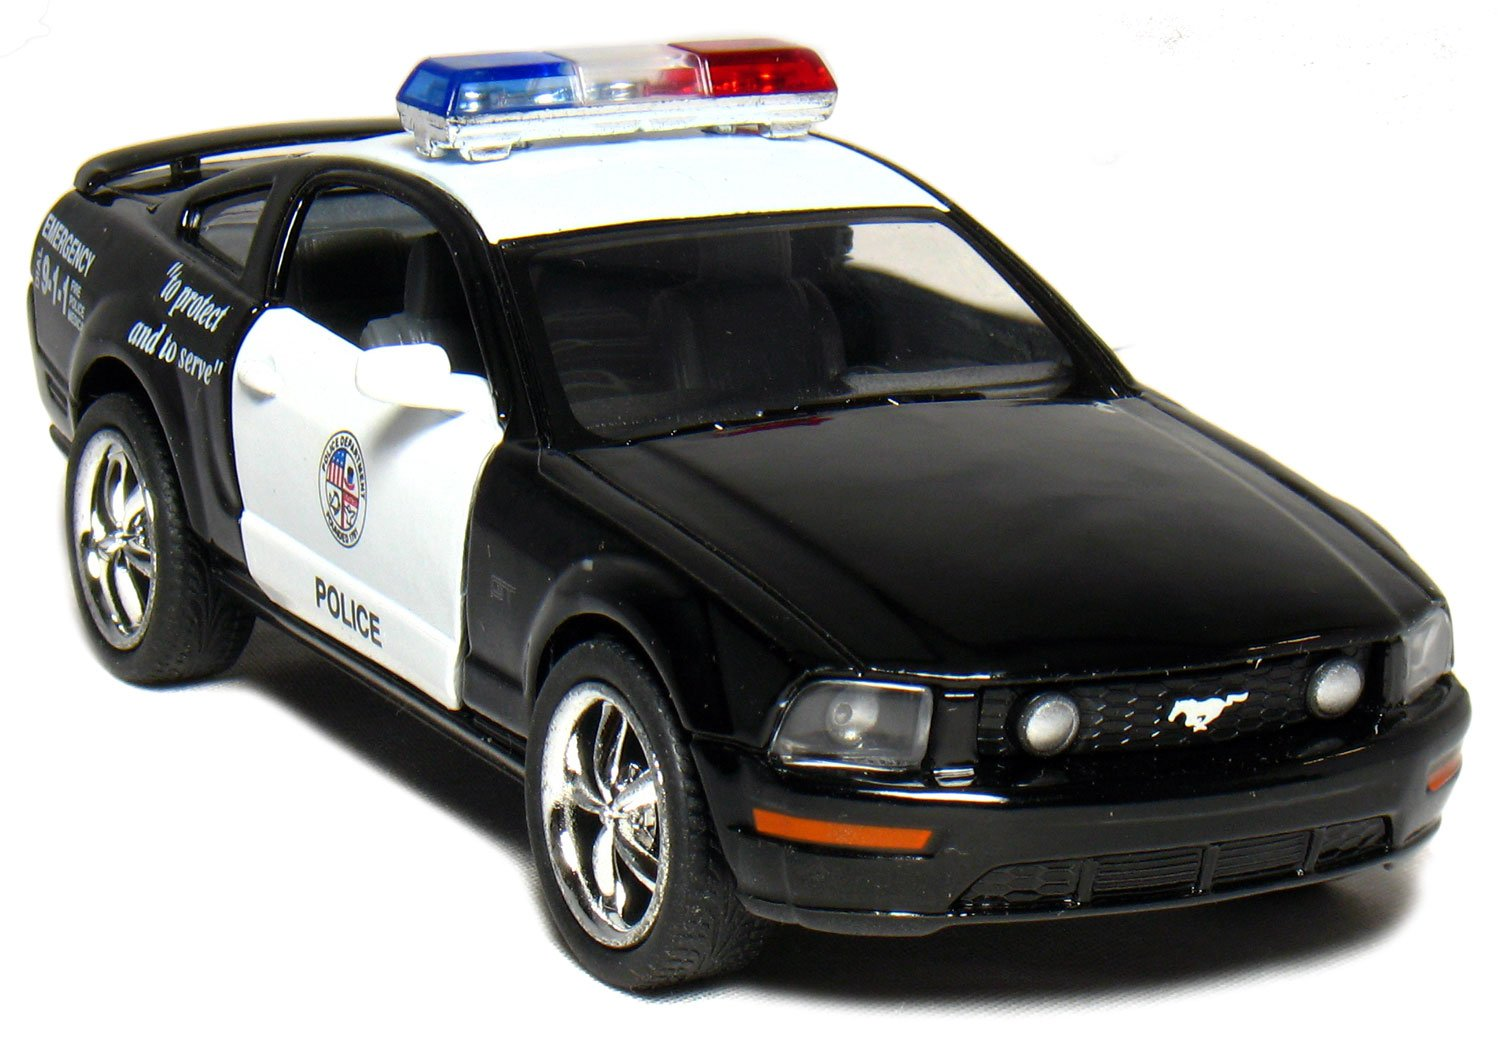 All Types 2006 mustang gt specs : Amazon.com: Ford Mustang GT Police 2006 Black & White 1-38 ...